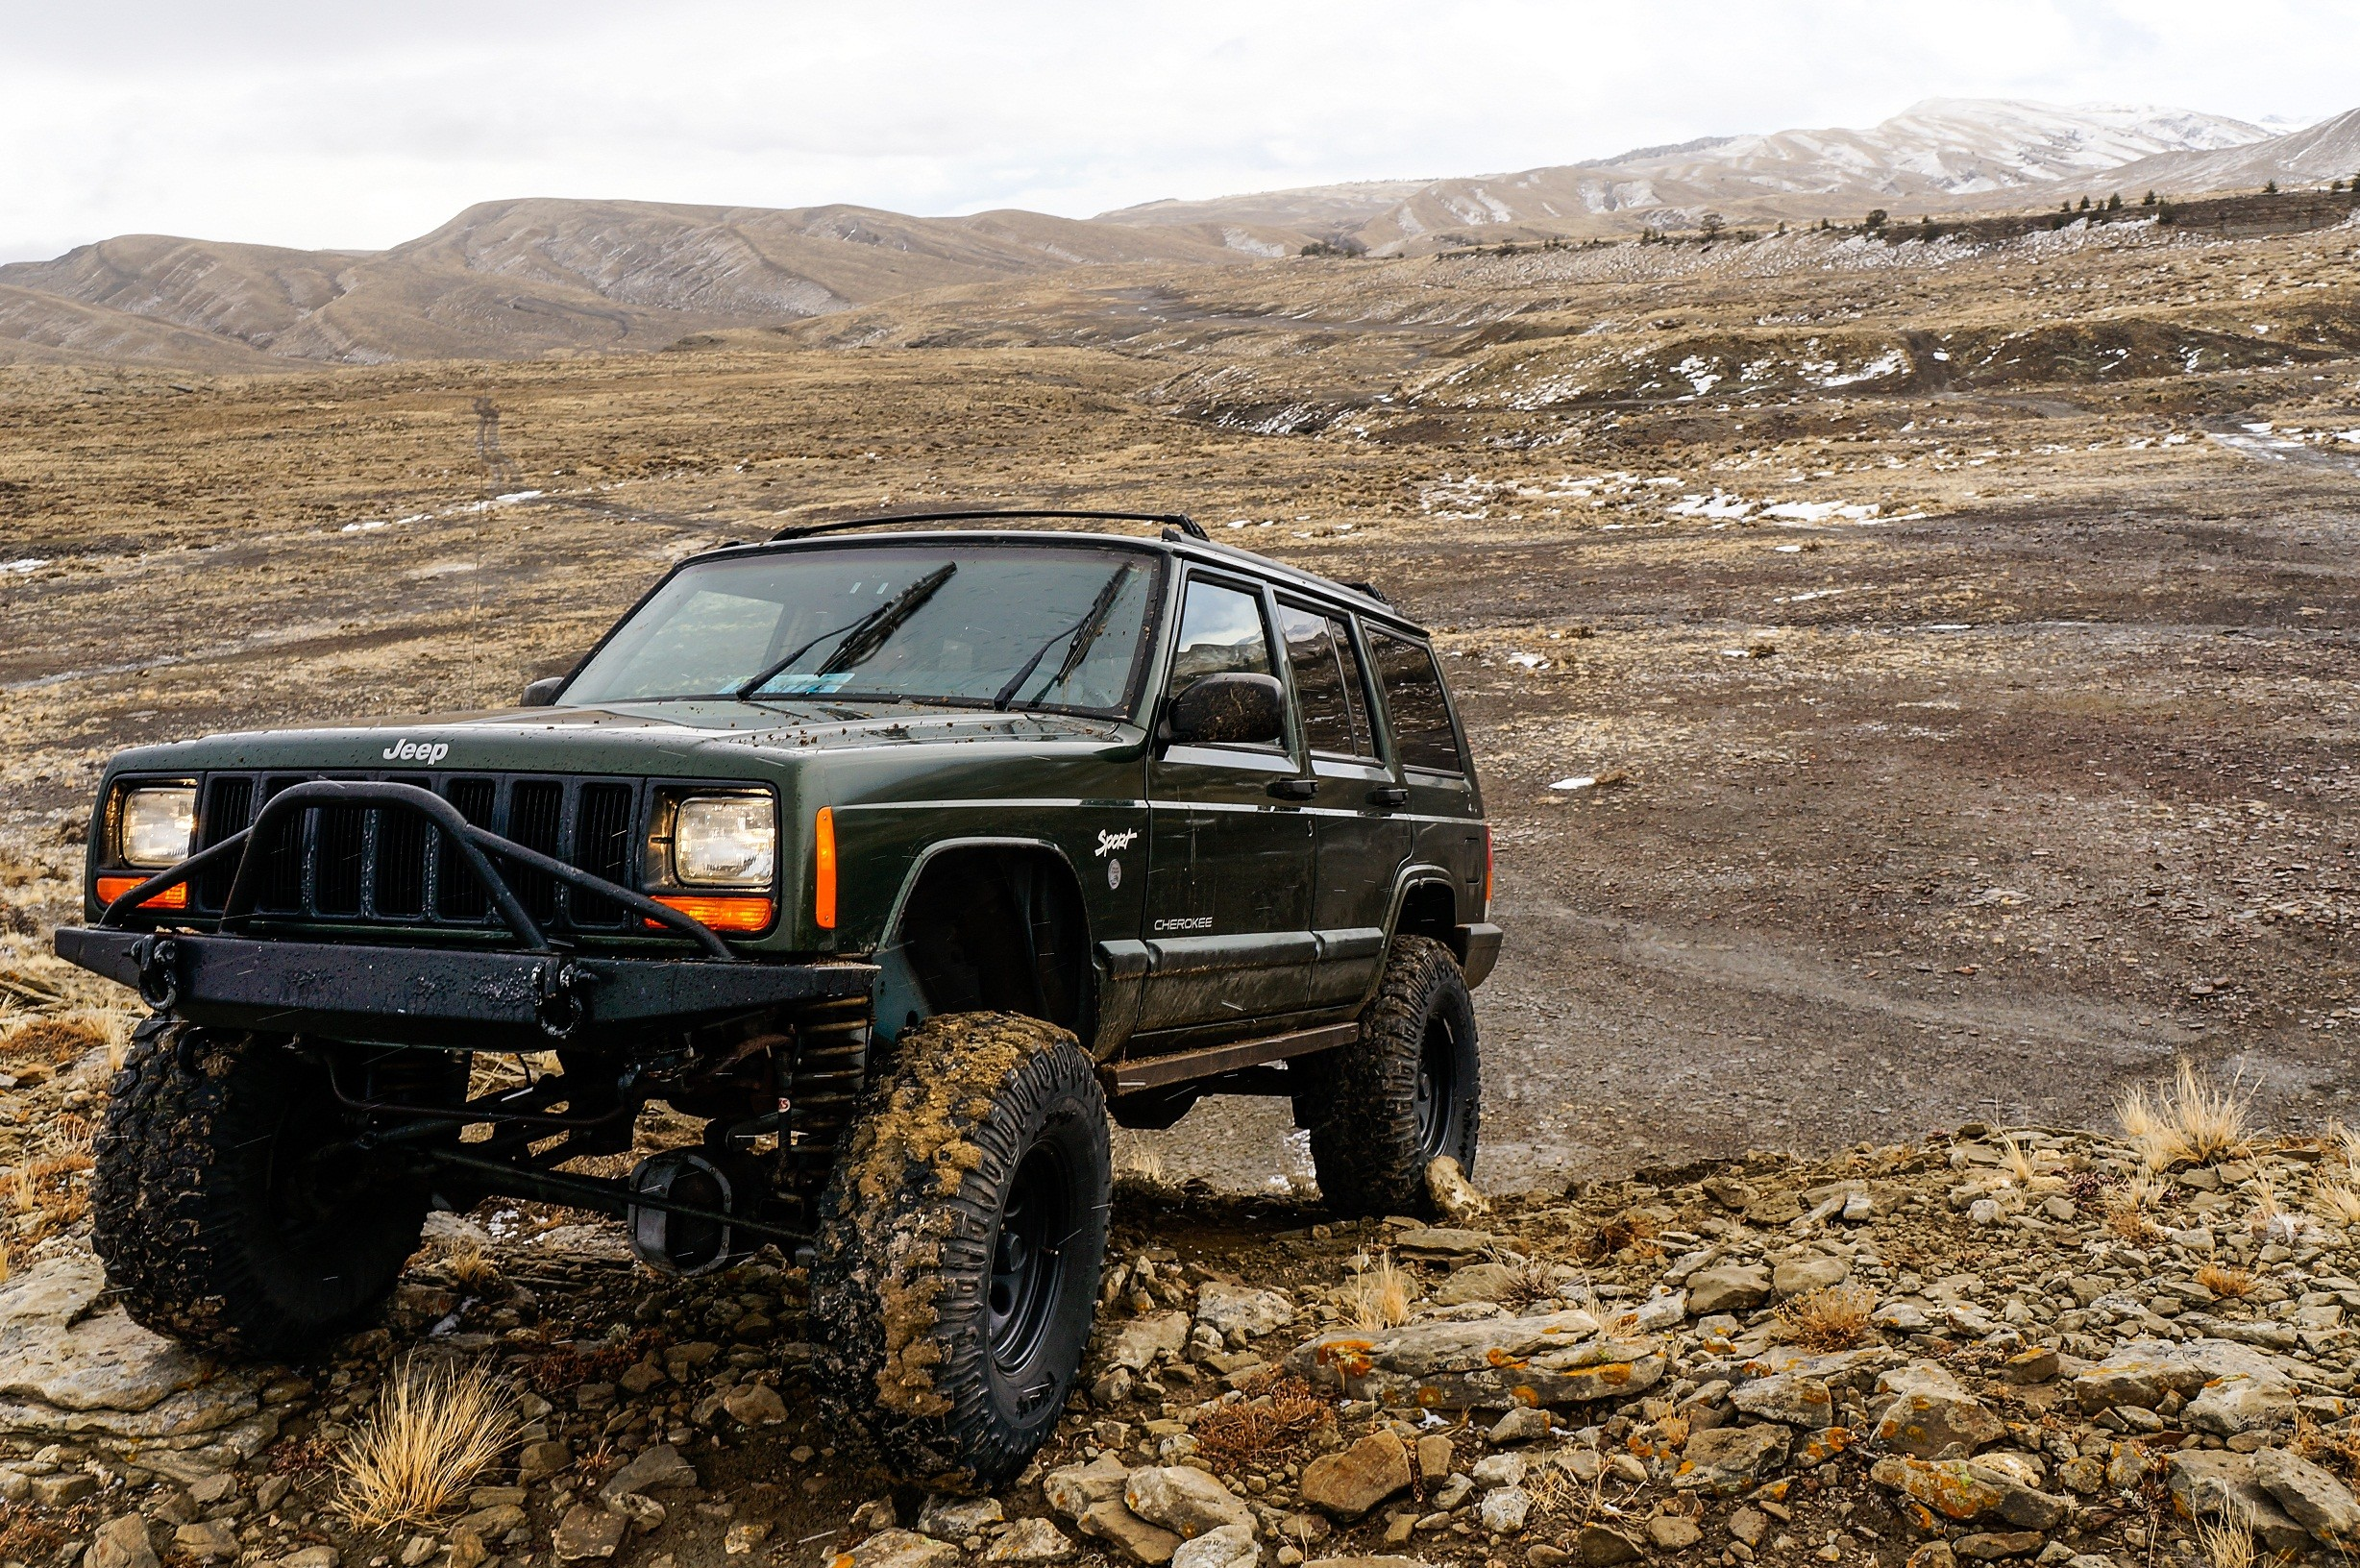 Res: 2456x1632, Vehicles - Jeep Cherokee Wallpaper